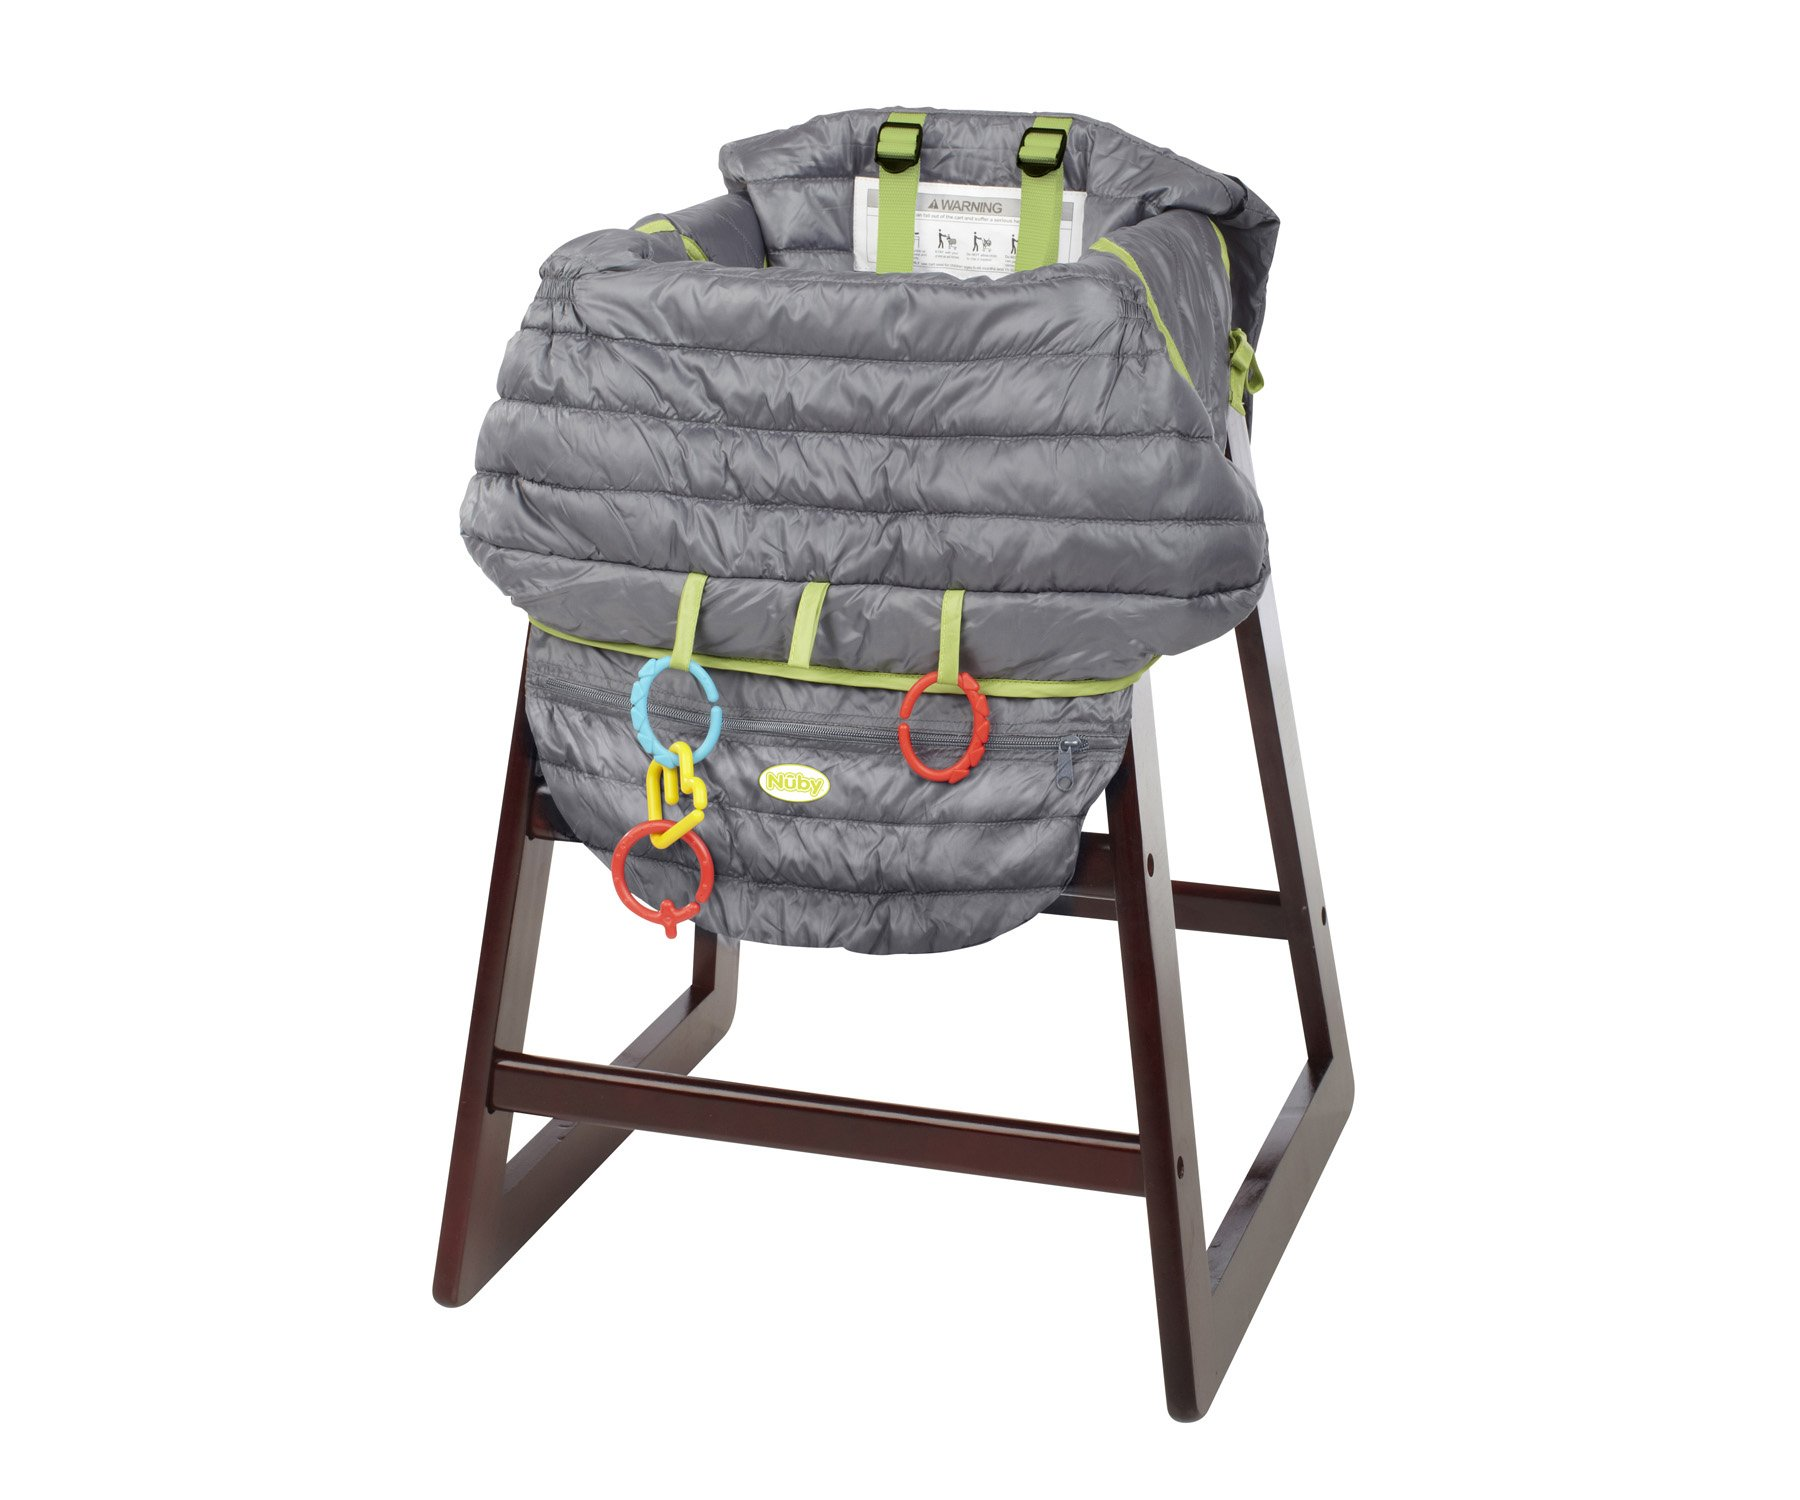 Nuby 2-in-1 Universal Size Quilted Shopping Cart and High Chair Cover, Grey by Nuby (Image #3)